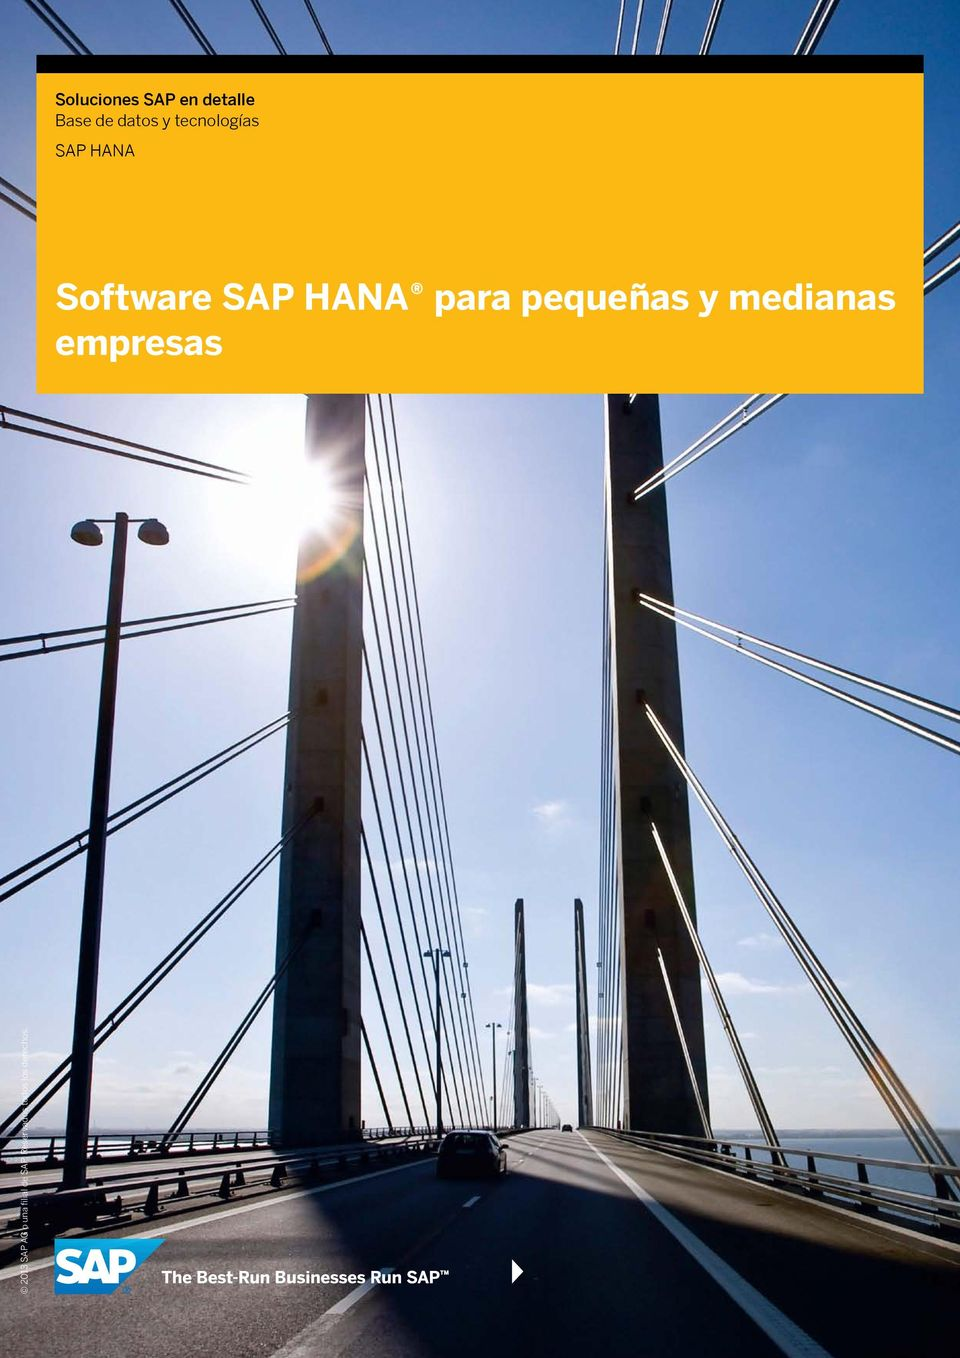 SAP HANA Software SAP HANA